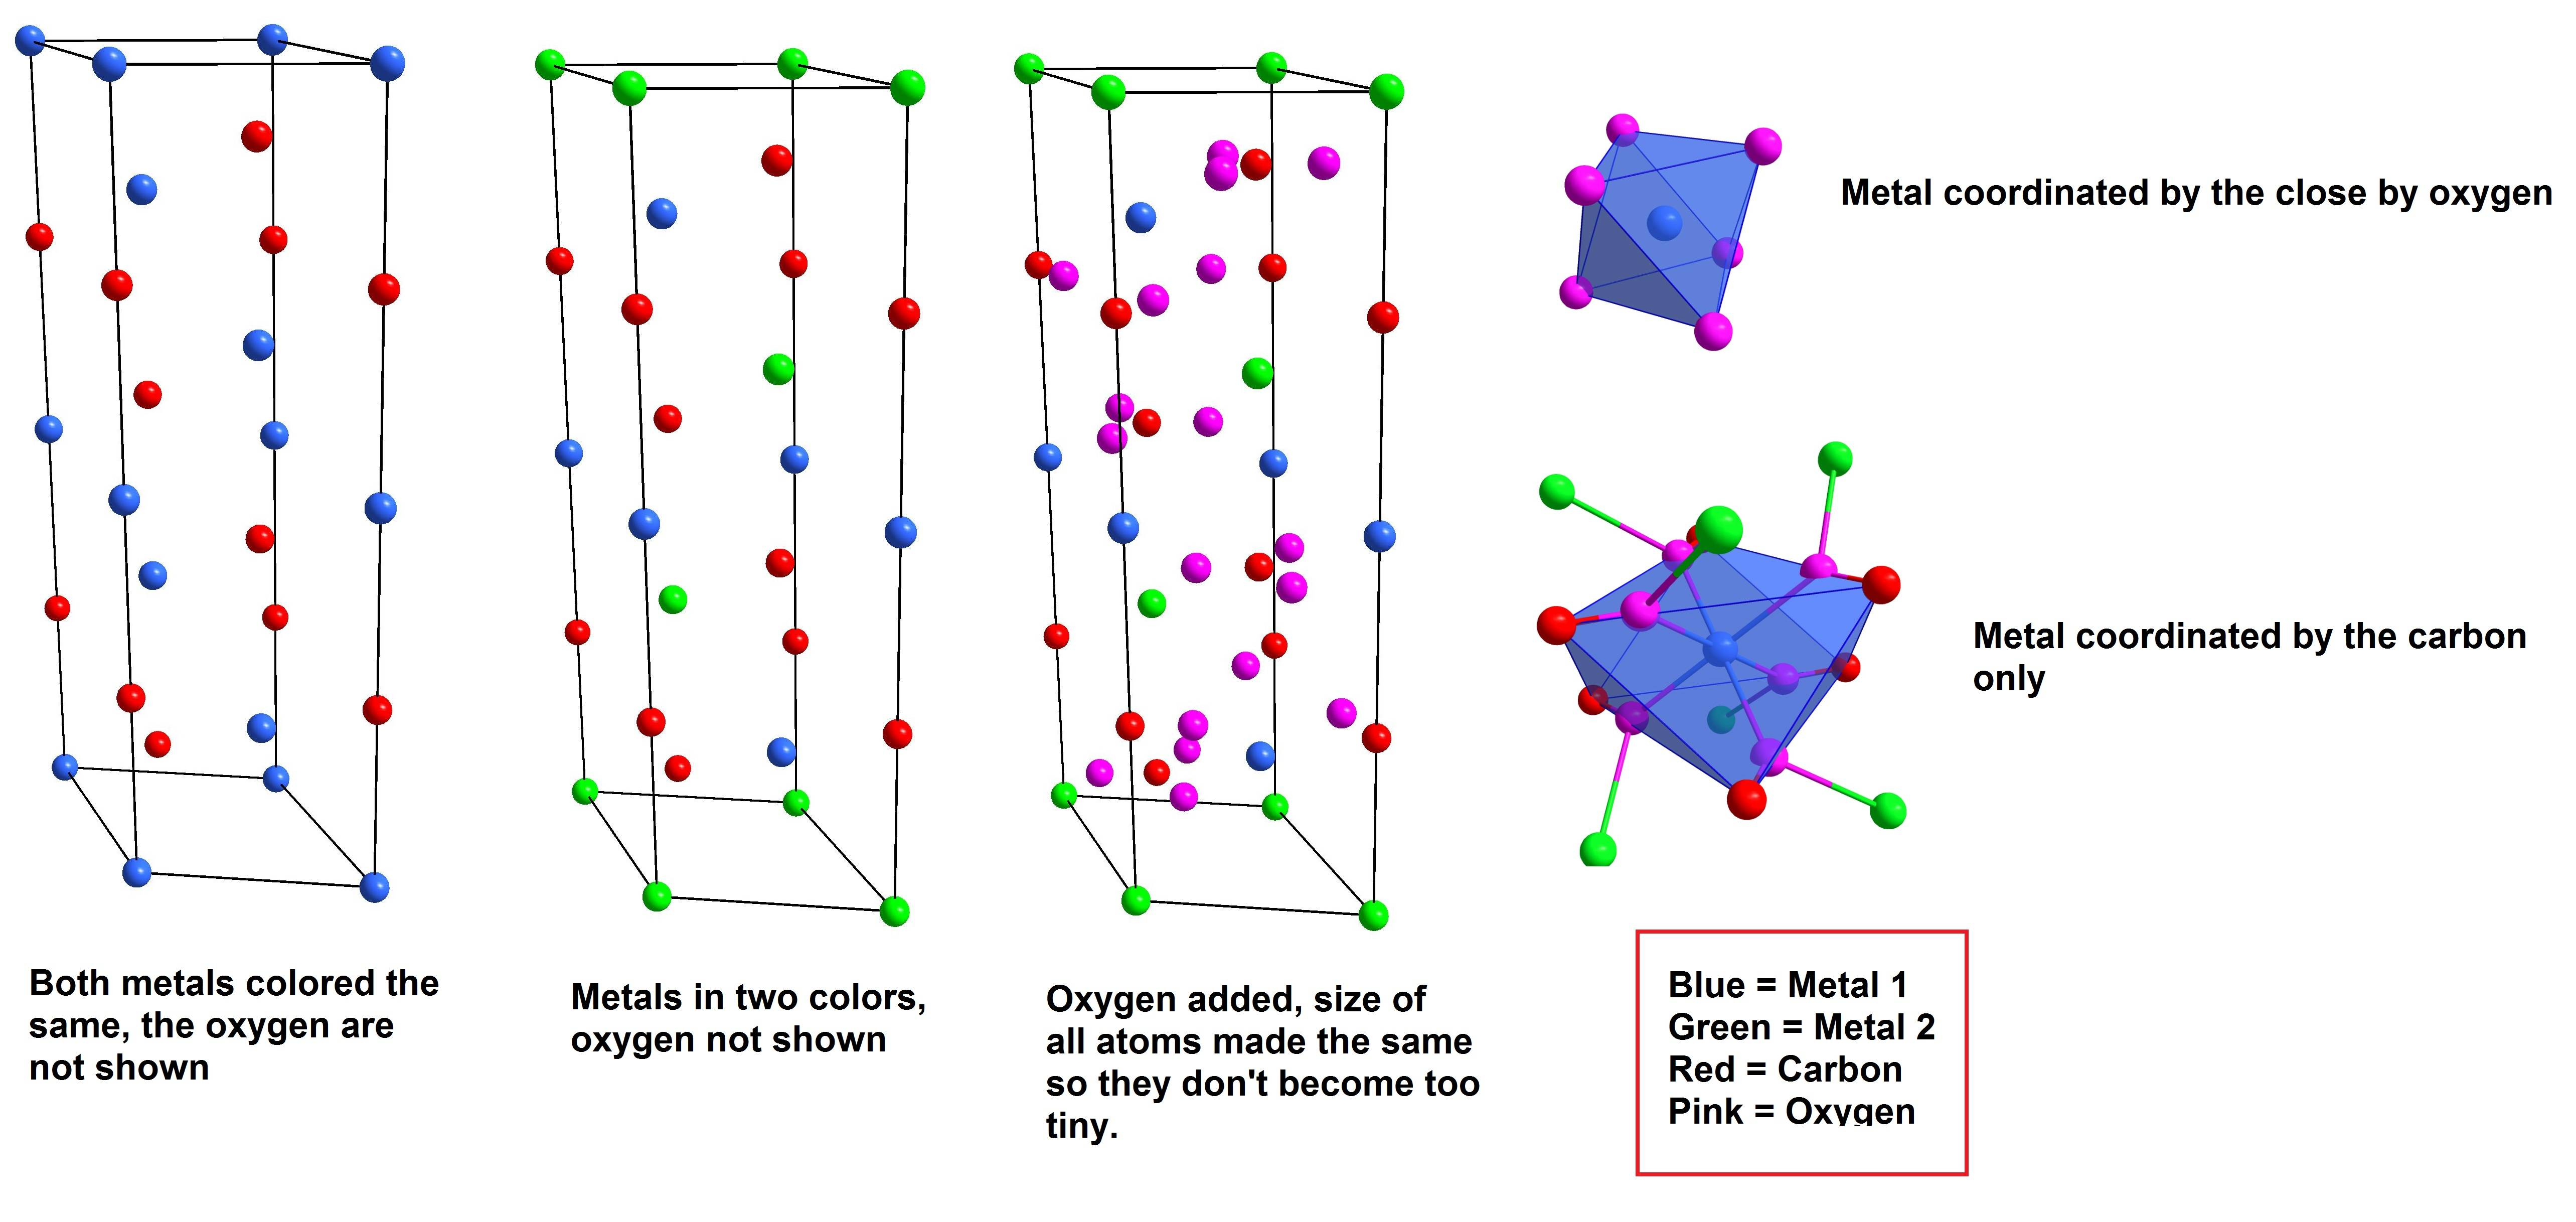 borax crystal diagram scosche wiring cubic structure www topsimages com of dolomite chemistry stack exchange jpg 5136x2436